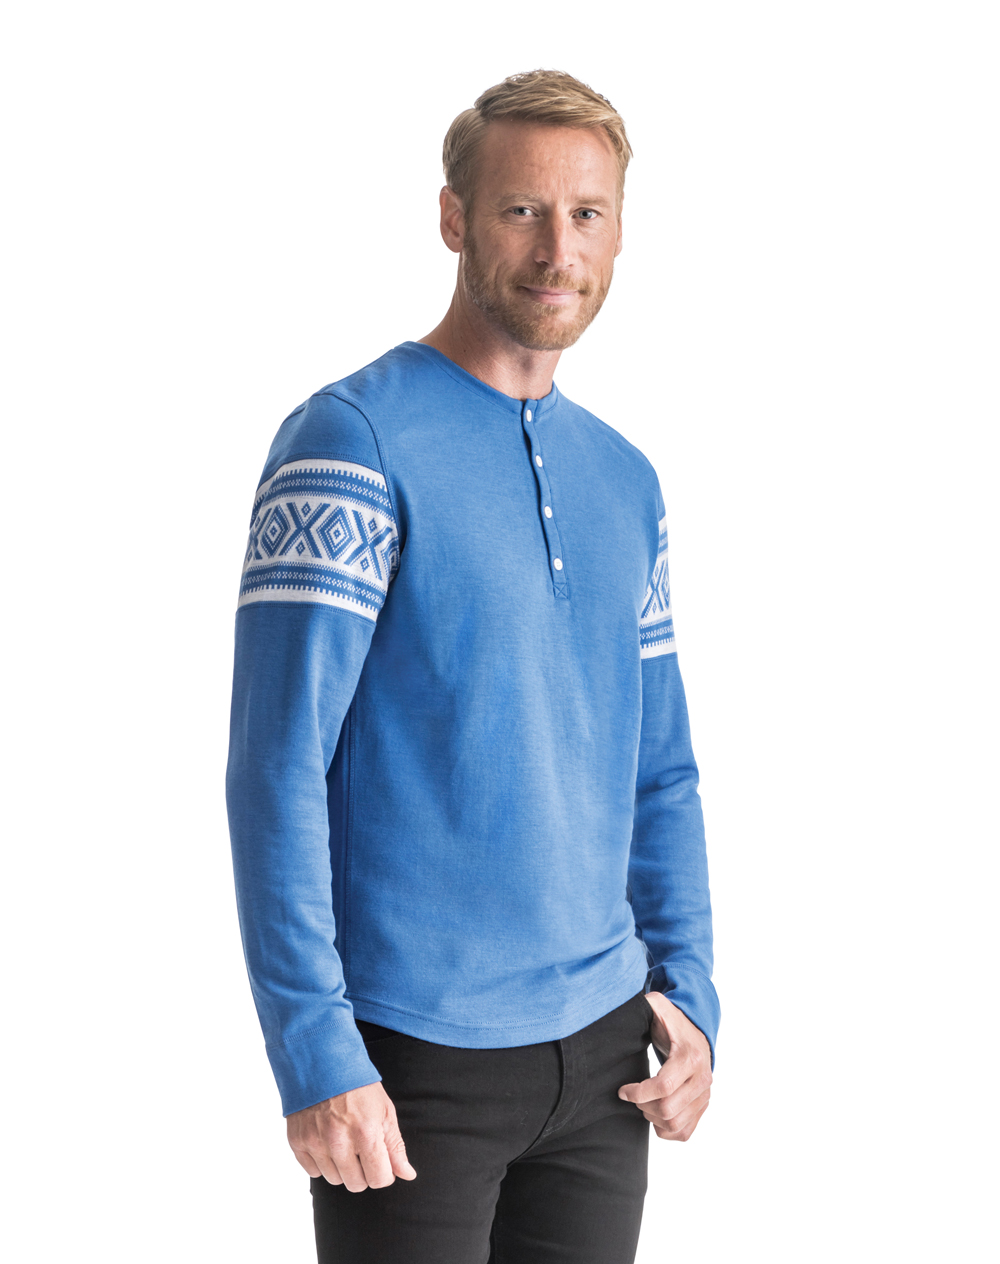 Bykle Masculine Sweater